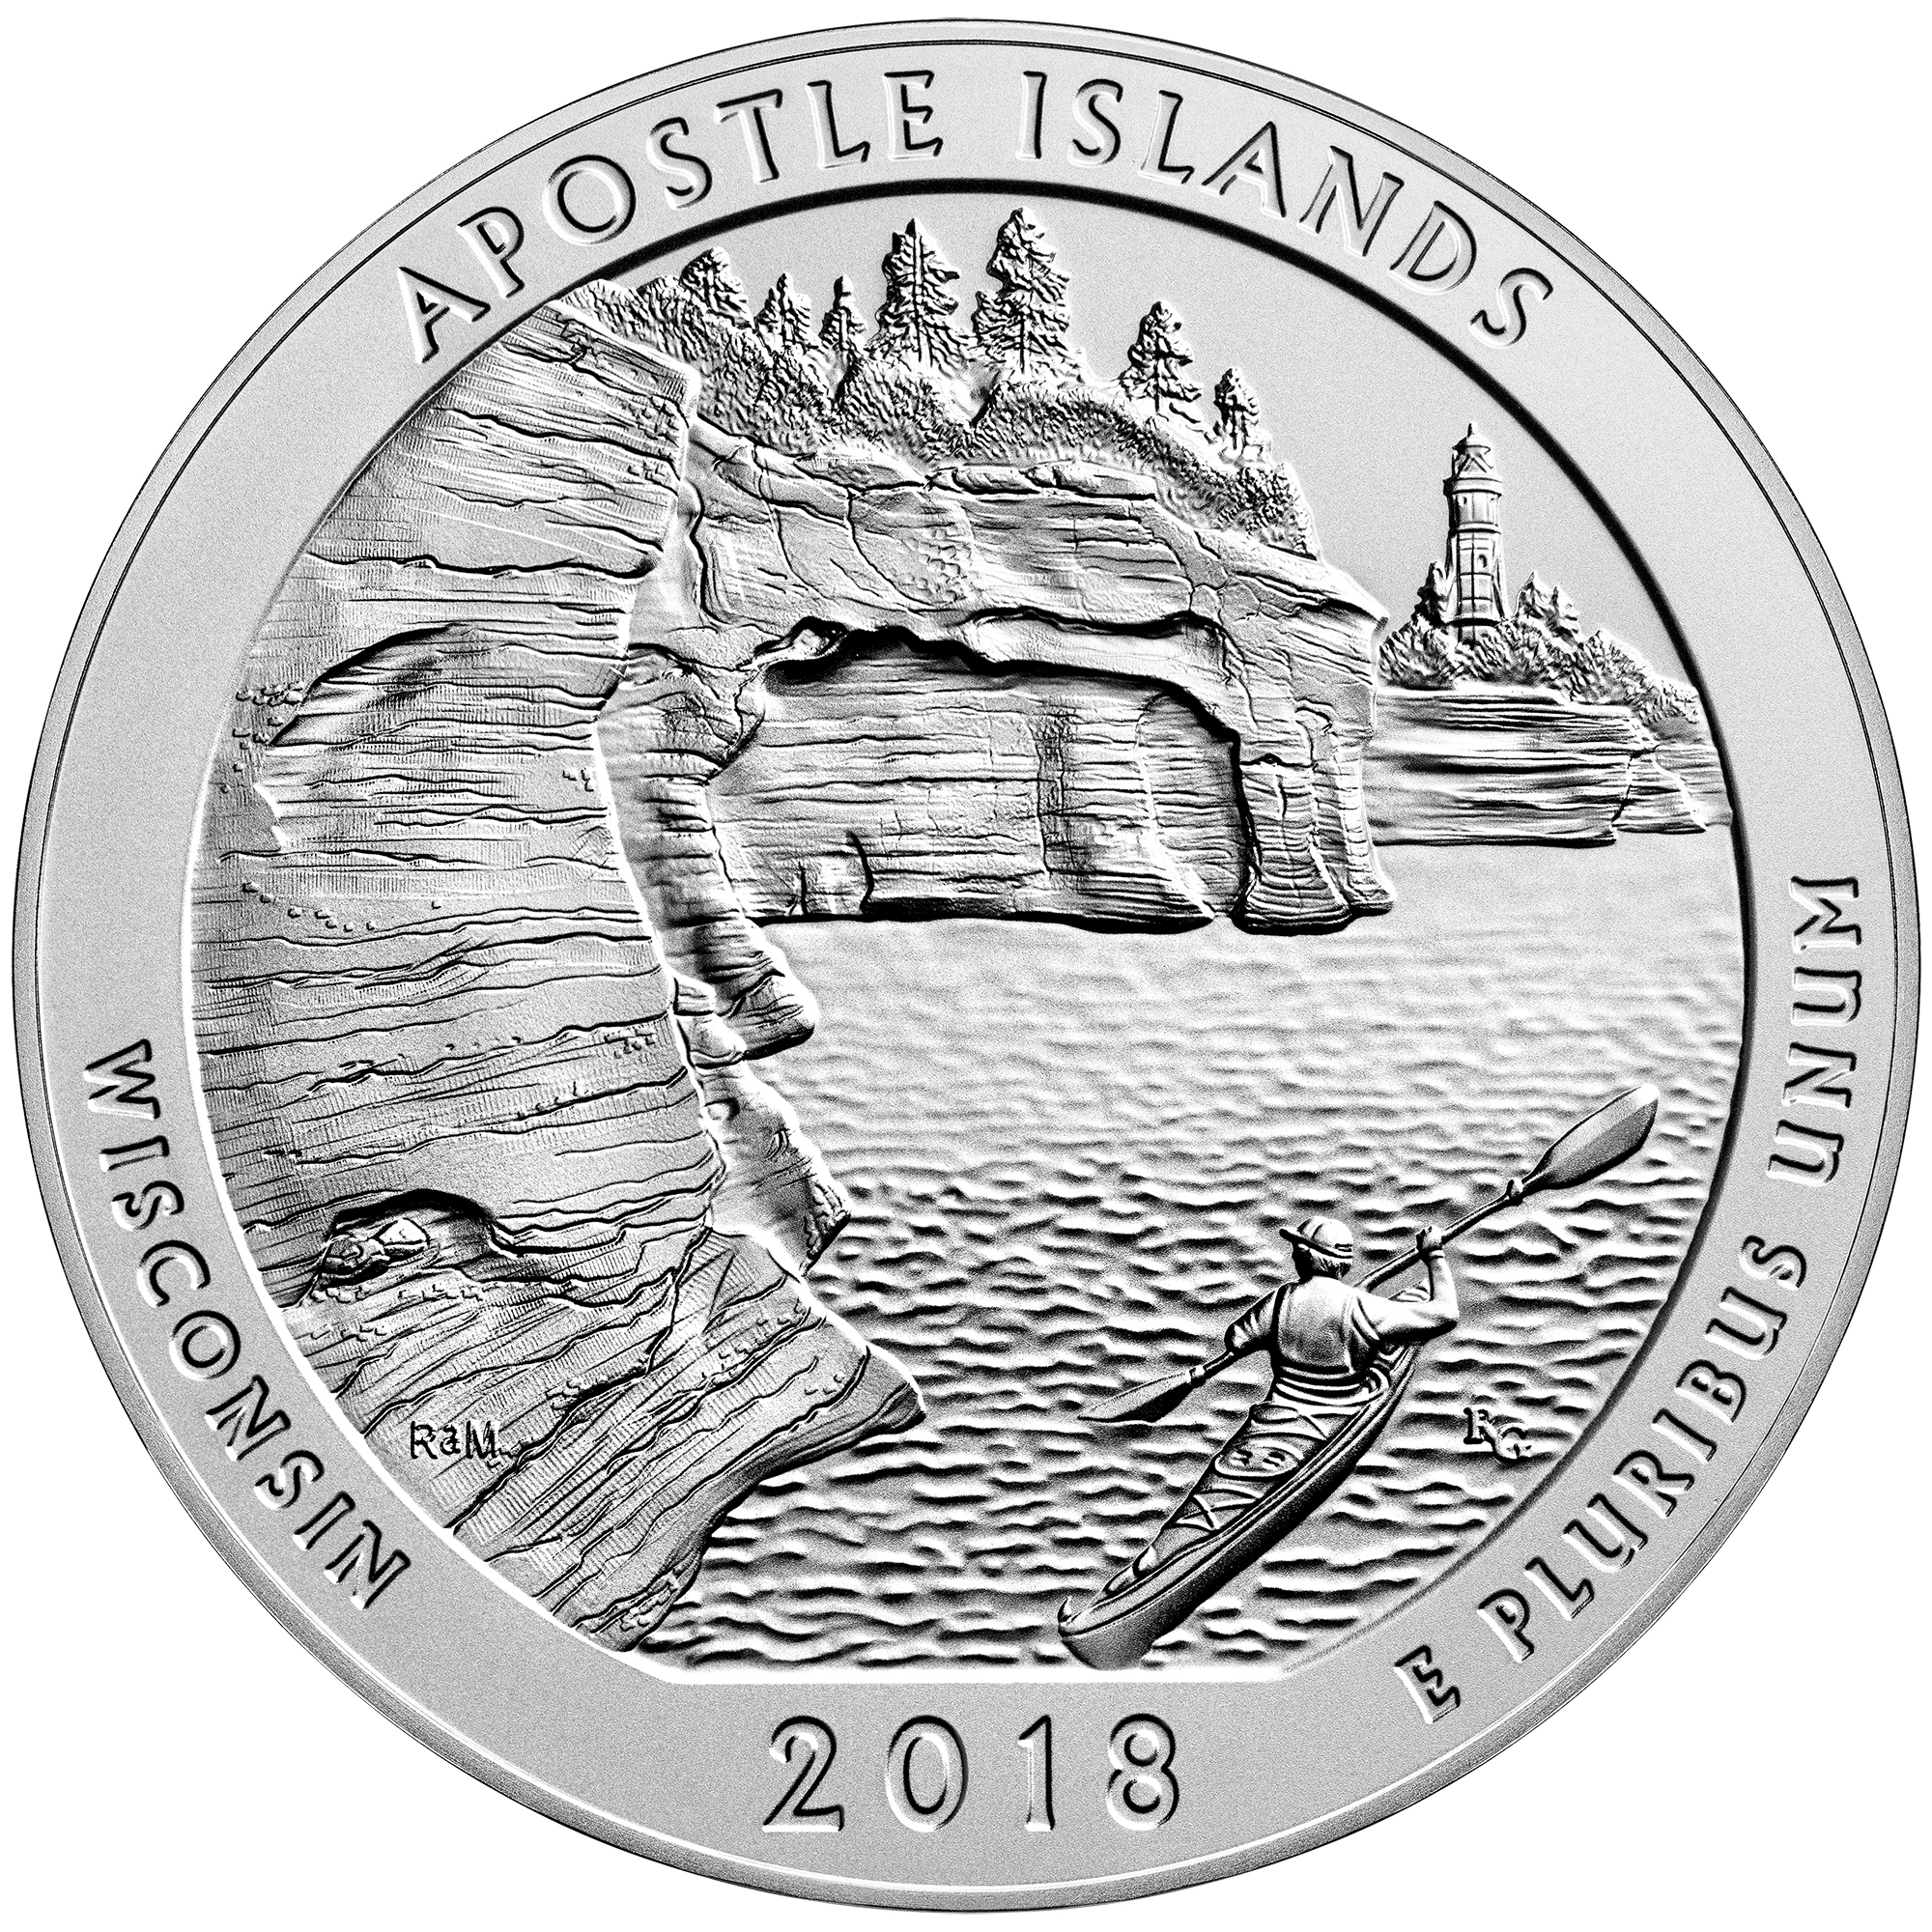 2018 America the Beautiful Quarters Five Ounce Silver Uncirculated Coin Apostle Islands Wisconsin Reverse